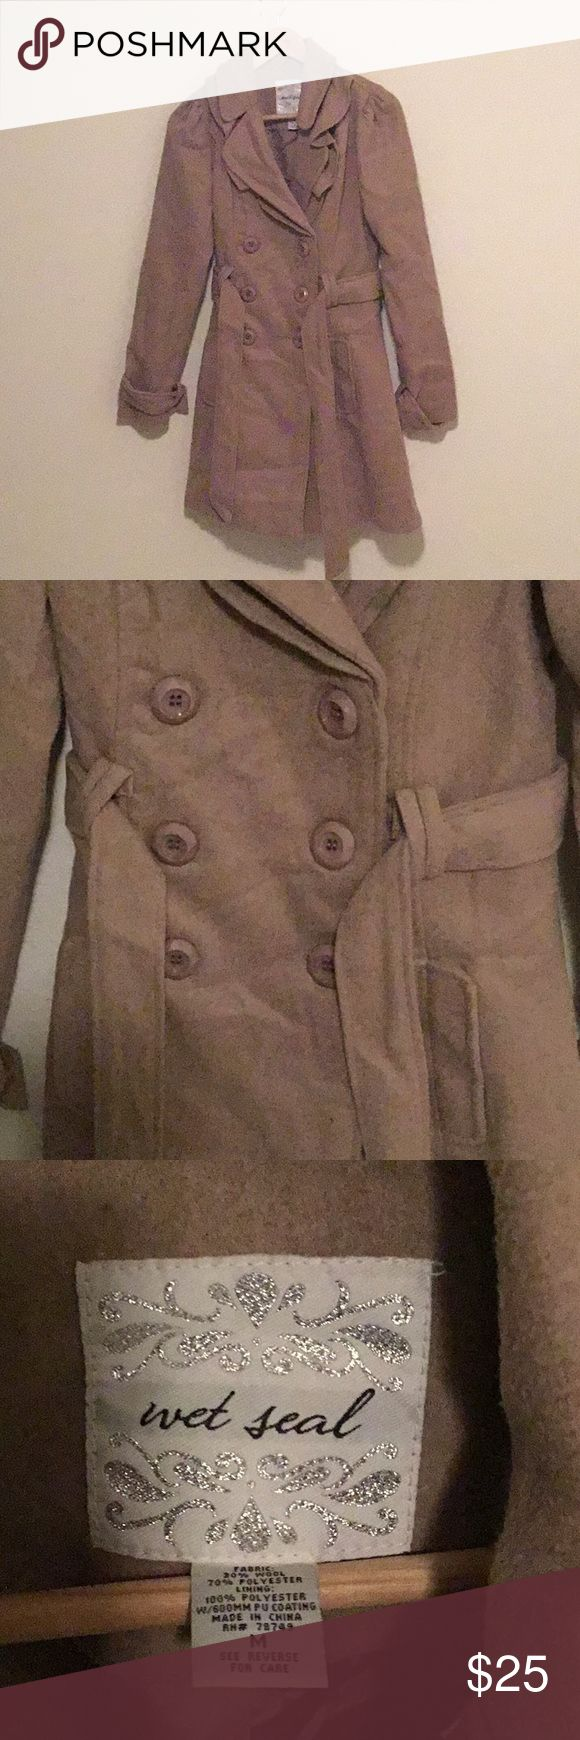 Brown Trench Coat Brown trench coat, wool and polyester, never been worn, great condition Wet Seal Jackets & Coats Trench Coats